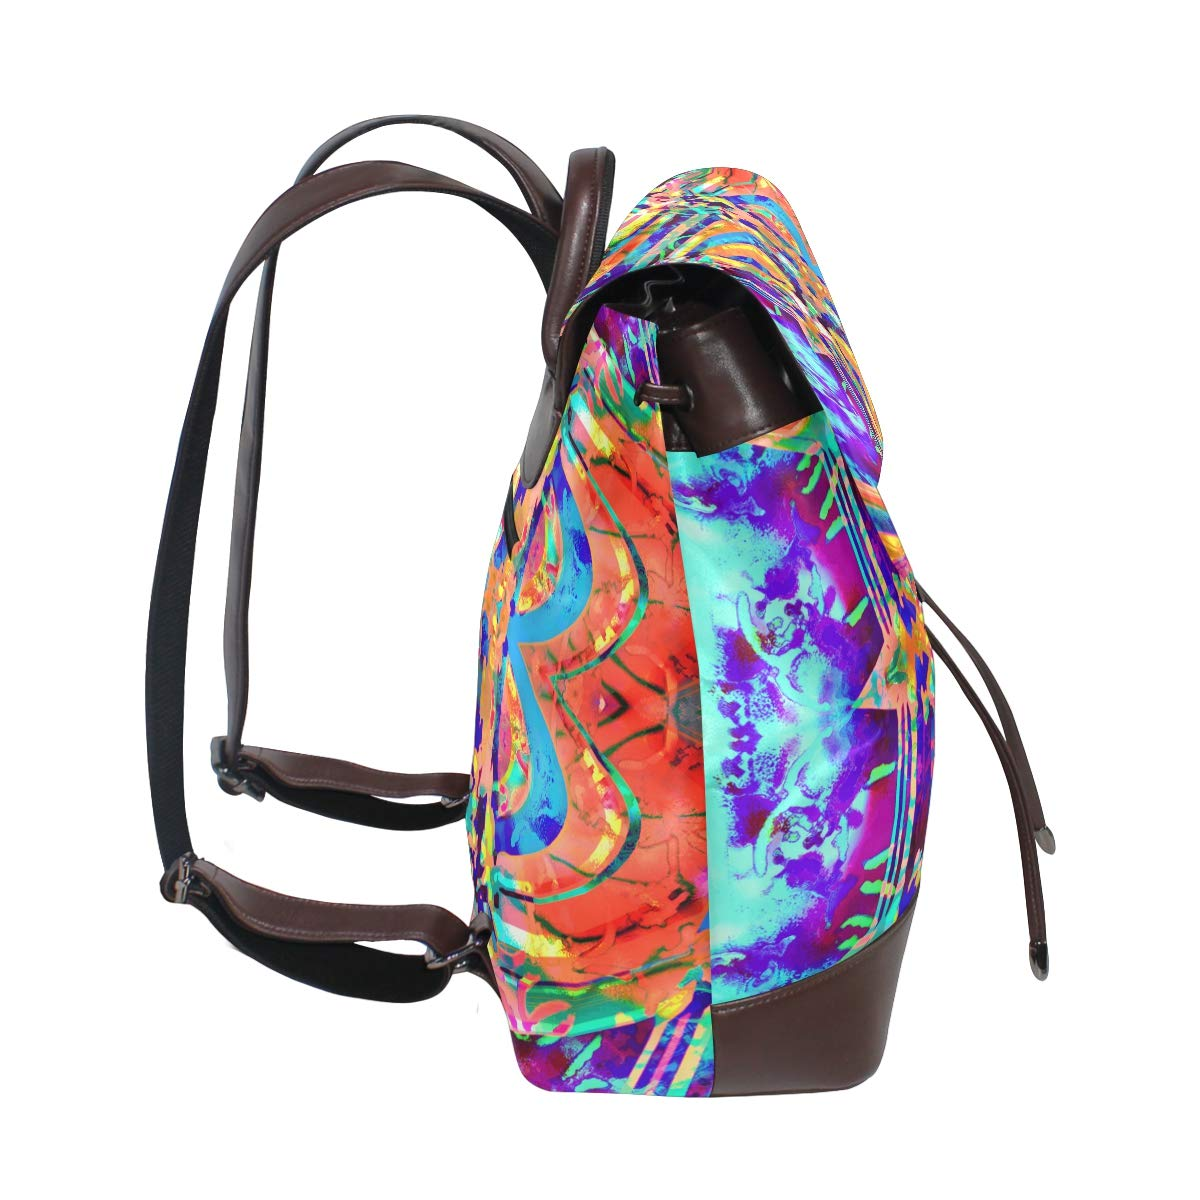 Unisex PU Leather Backpack Colorful Psychedelic Trippy Painting Print Womens Casual Daypack Mens Travel Sports Bag Boys College Bookbag